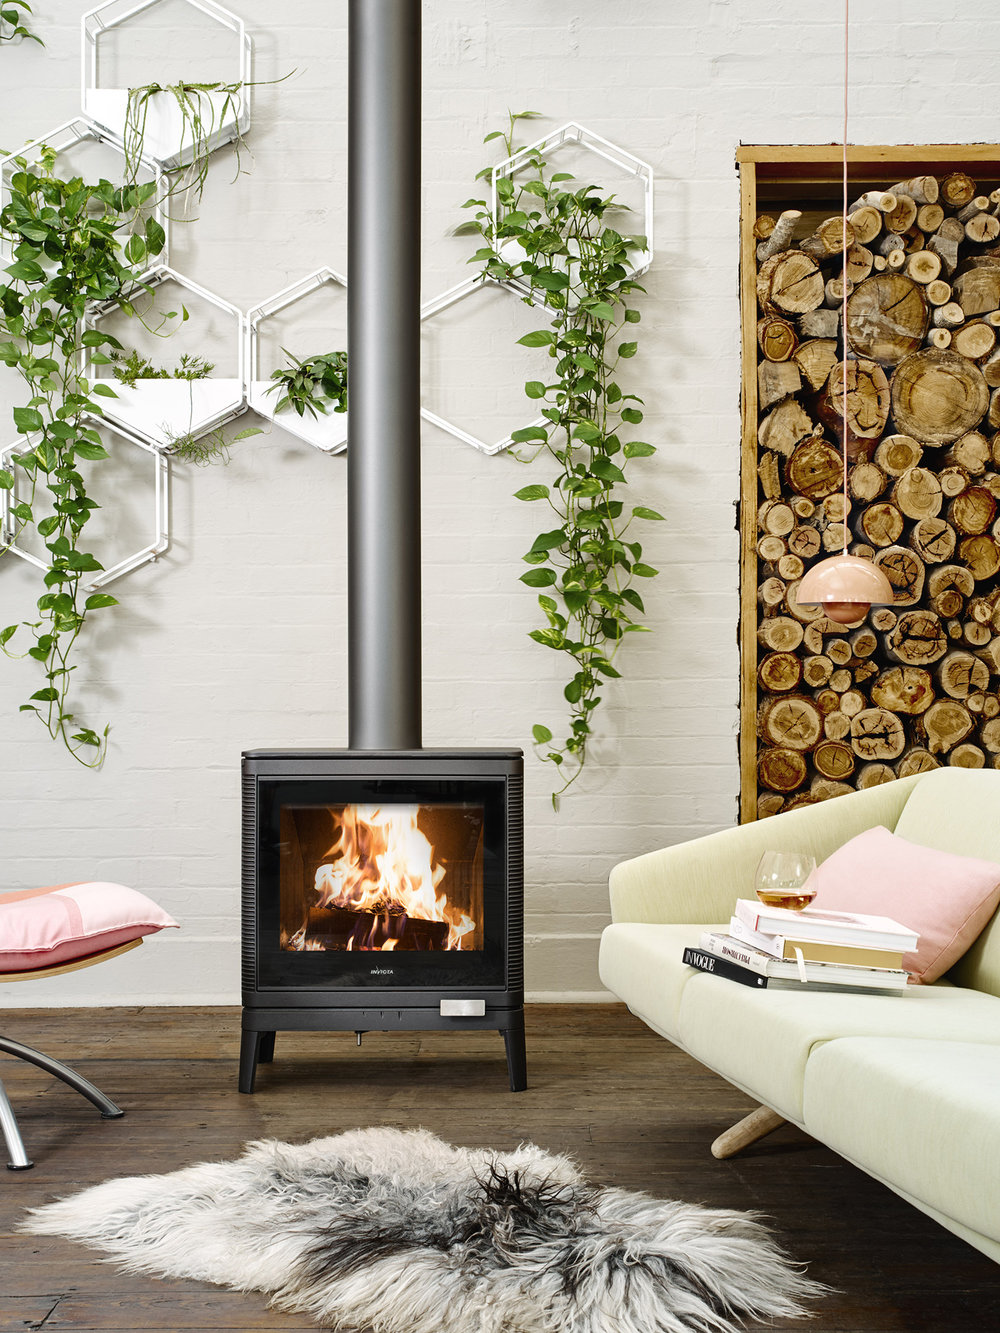 Shaker Fireplace Inspirational C Mon Baby Light My Fire — Adore Home Magazine